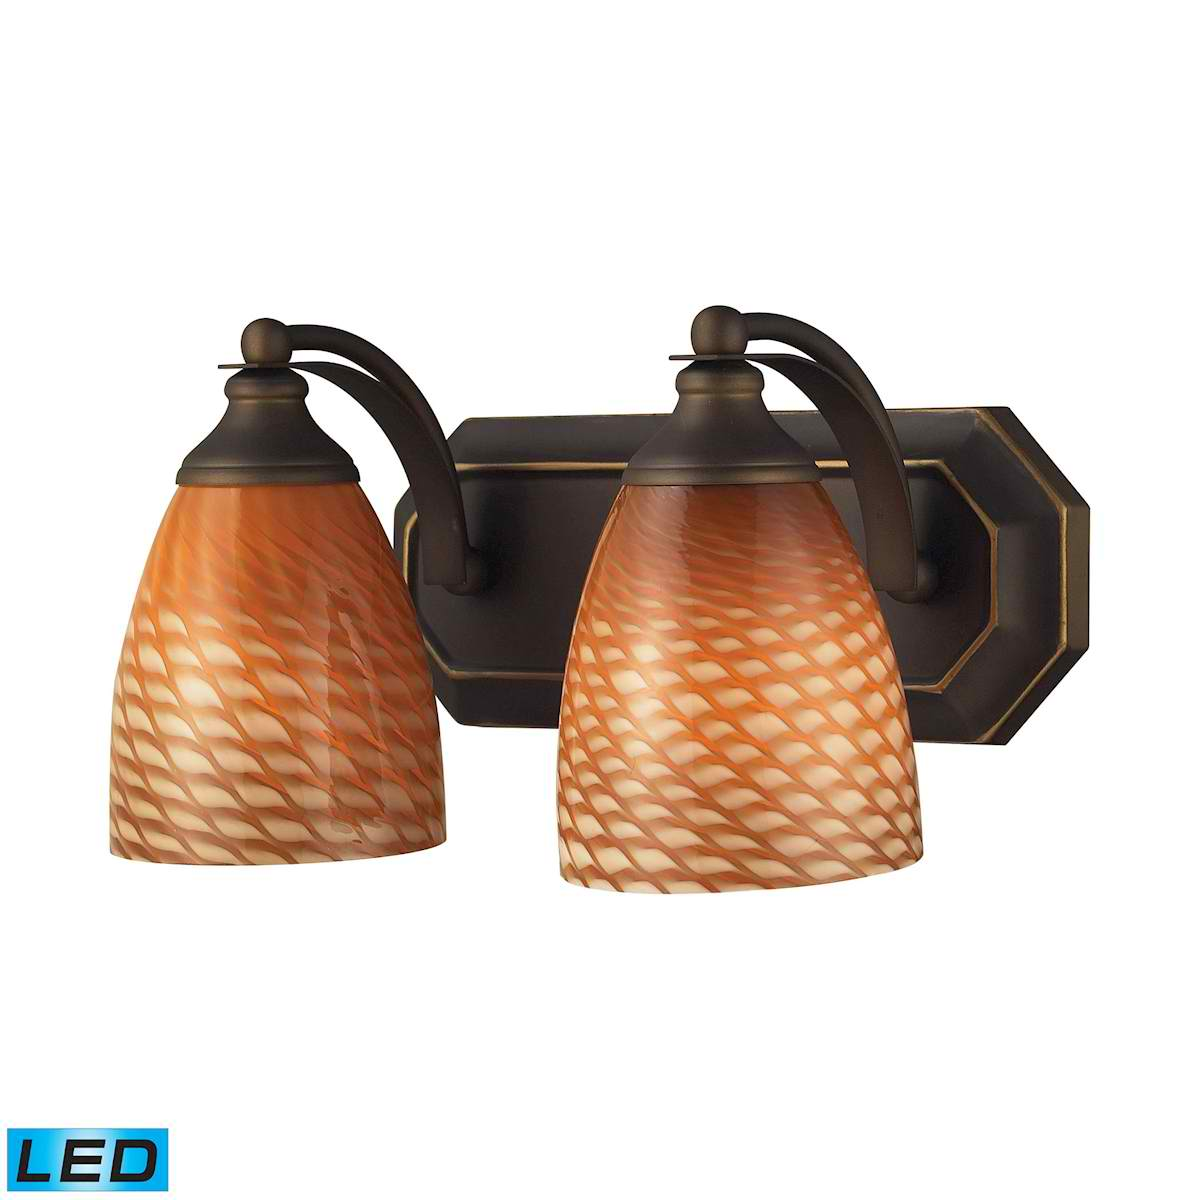 2 Light Vanity in Aged Bronze and Coco Glass - LED, 800 Lumens (1600 Lumens Total) with Full Scale